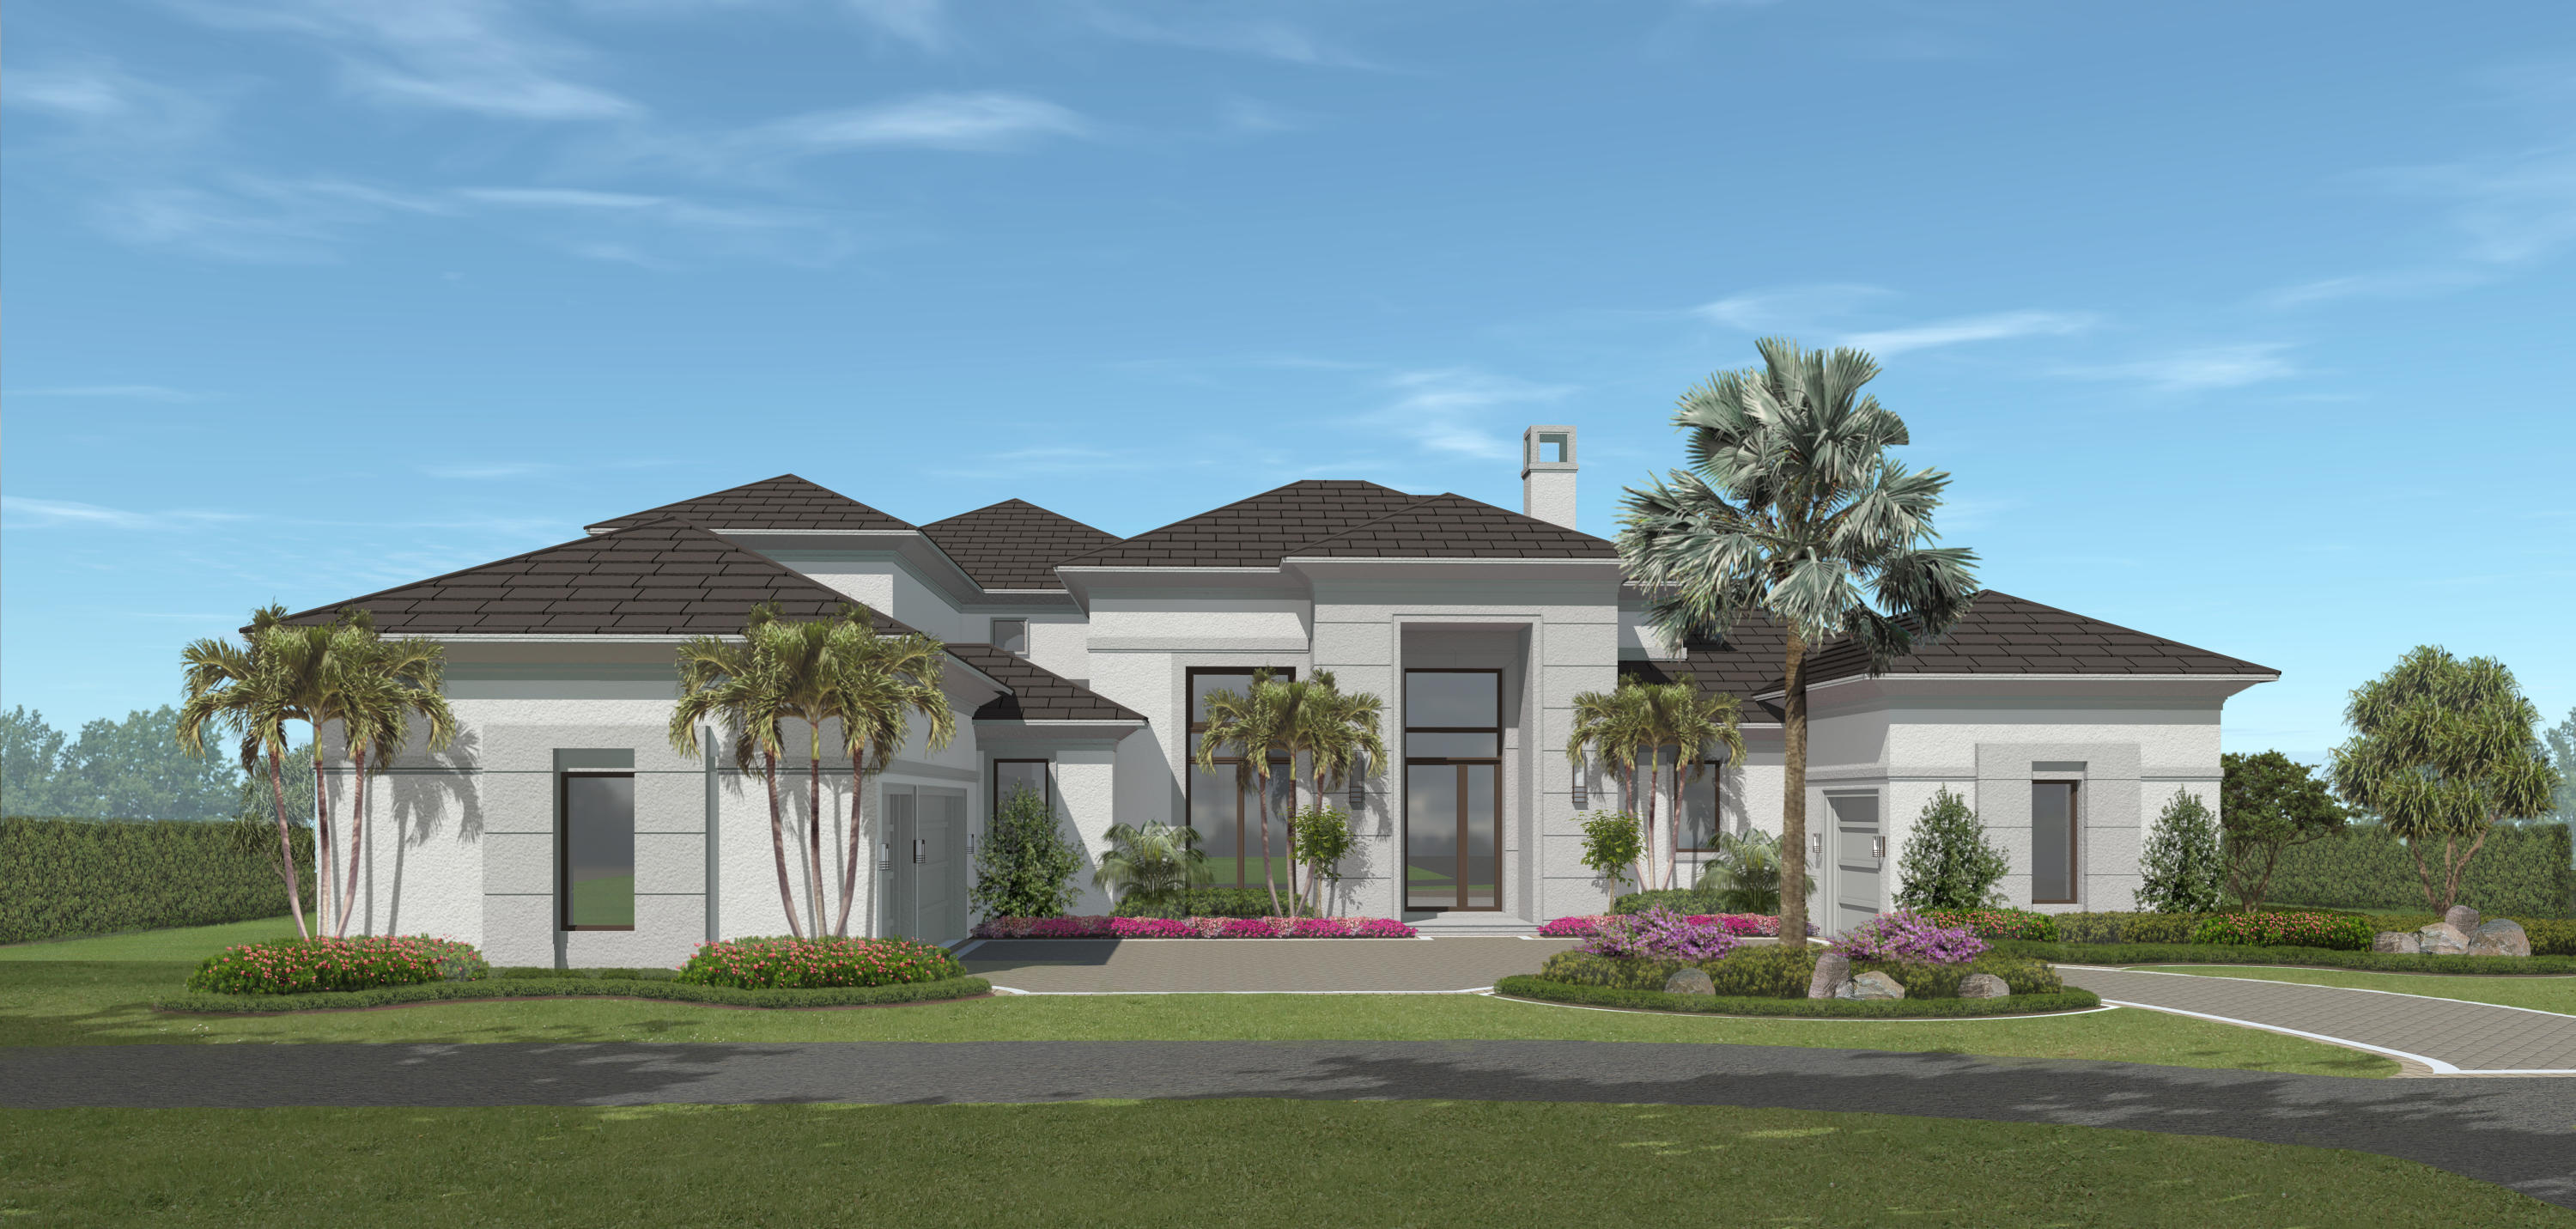 New Home for sale at 12037 Corozo Court in Palm Beach Gardens